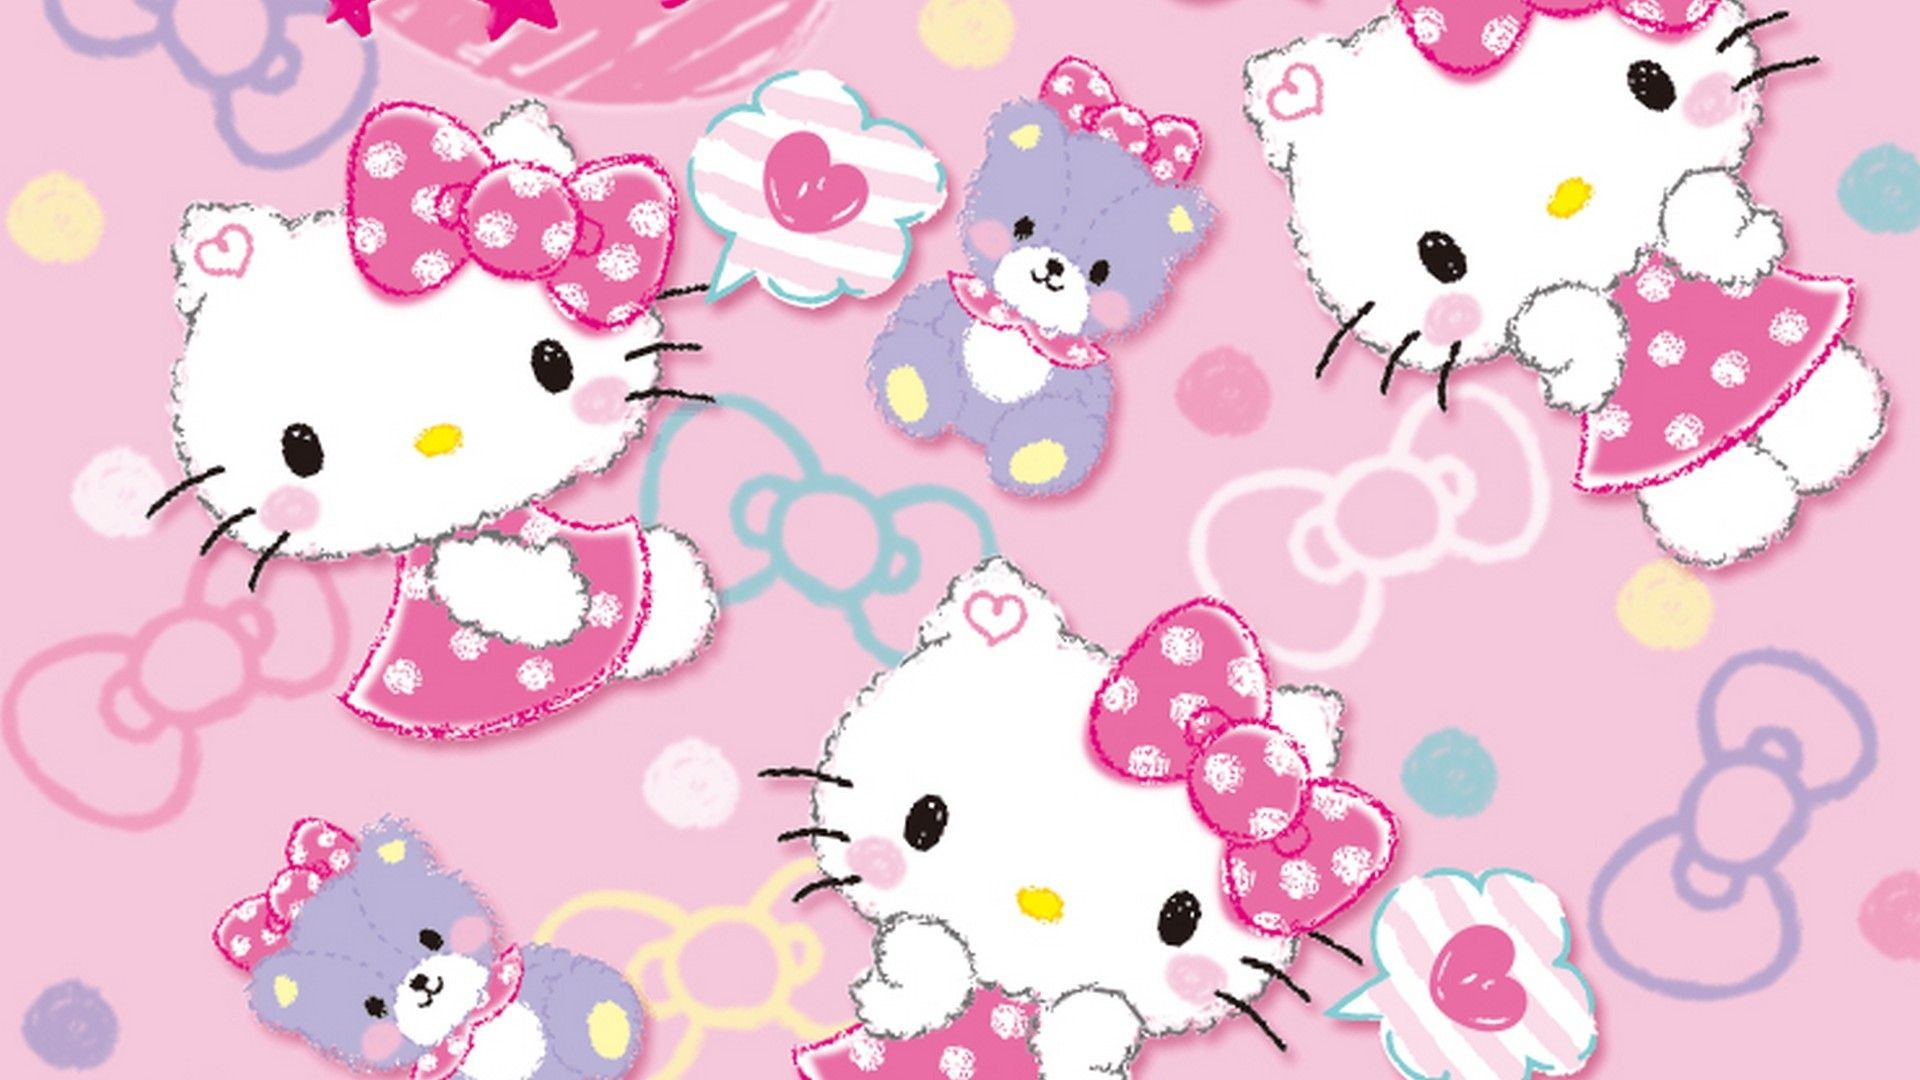 1920x1080 Hello Kitty Characters Background Wallpaper HD - Best Wallpaper HD